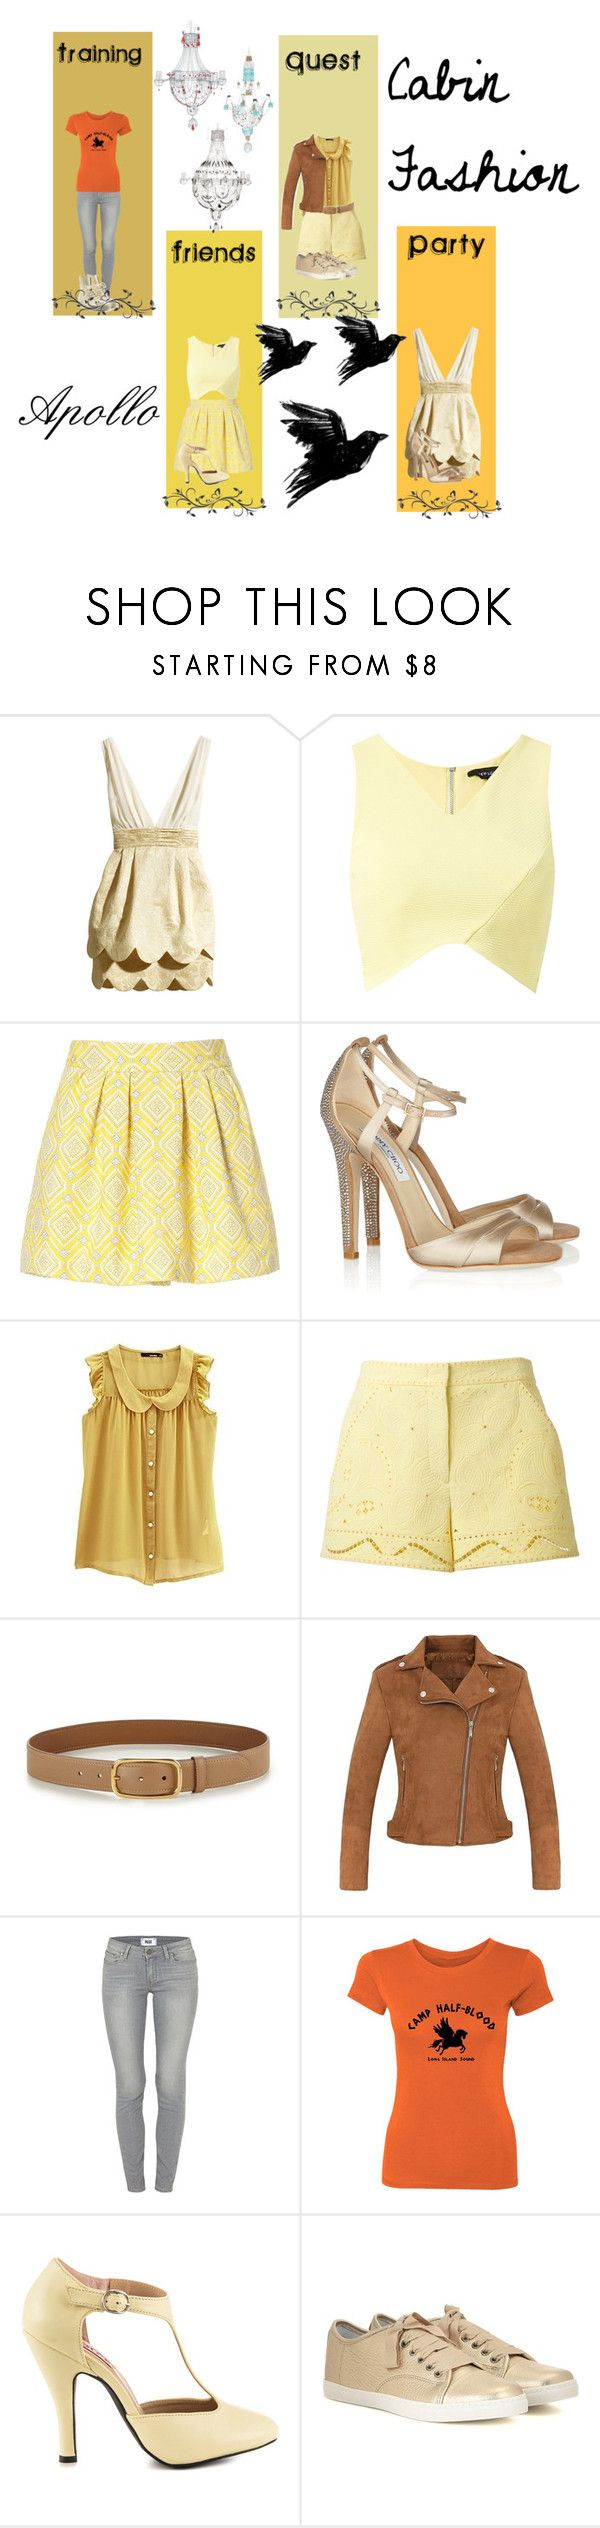 """""""Apollo Cabin Fashion"""" by tinkerbell06 ❤ liked on Polyvore featuring Zara, Jimmy Choo, Emilio Pucci, Prada, Paige Denim, Mojo Moxy and Rick Owens"""